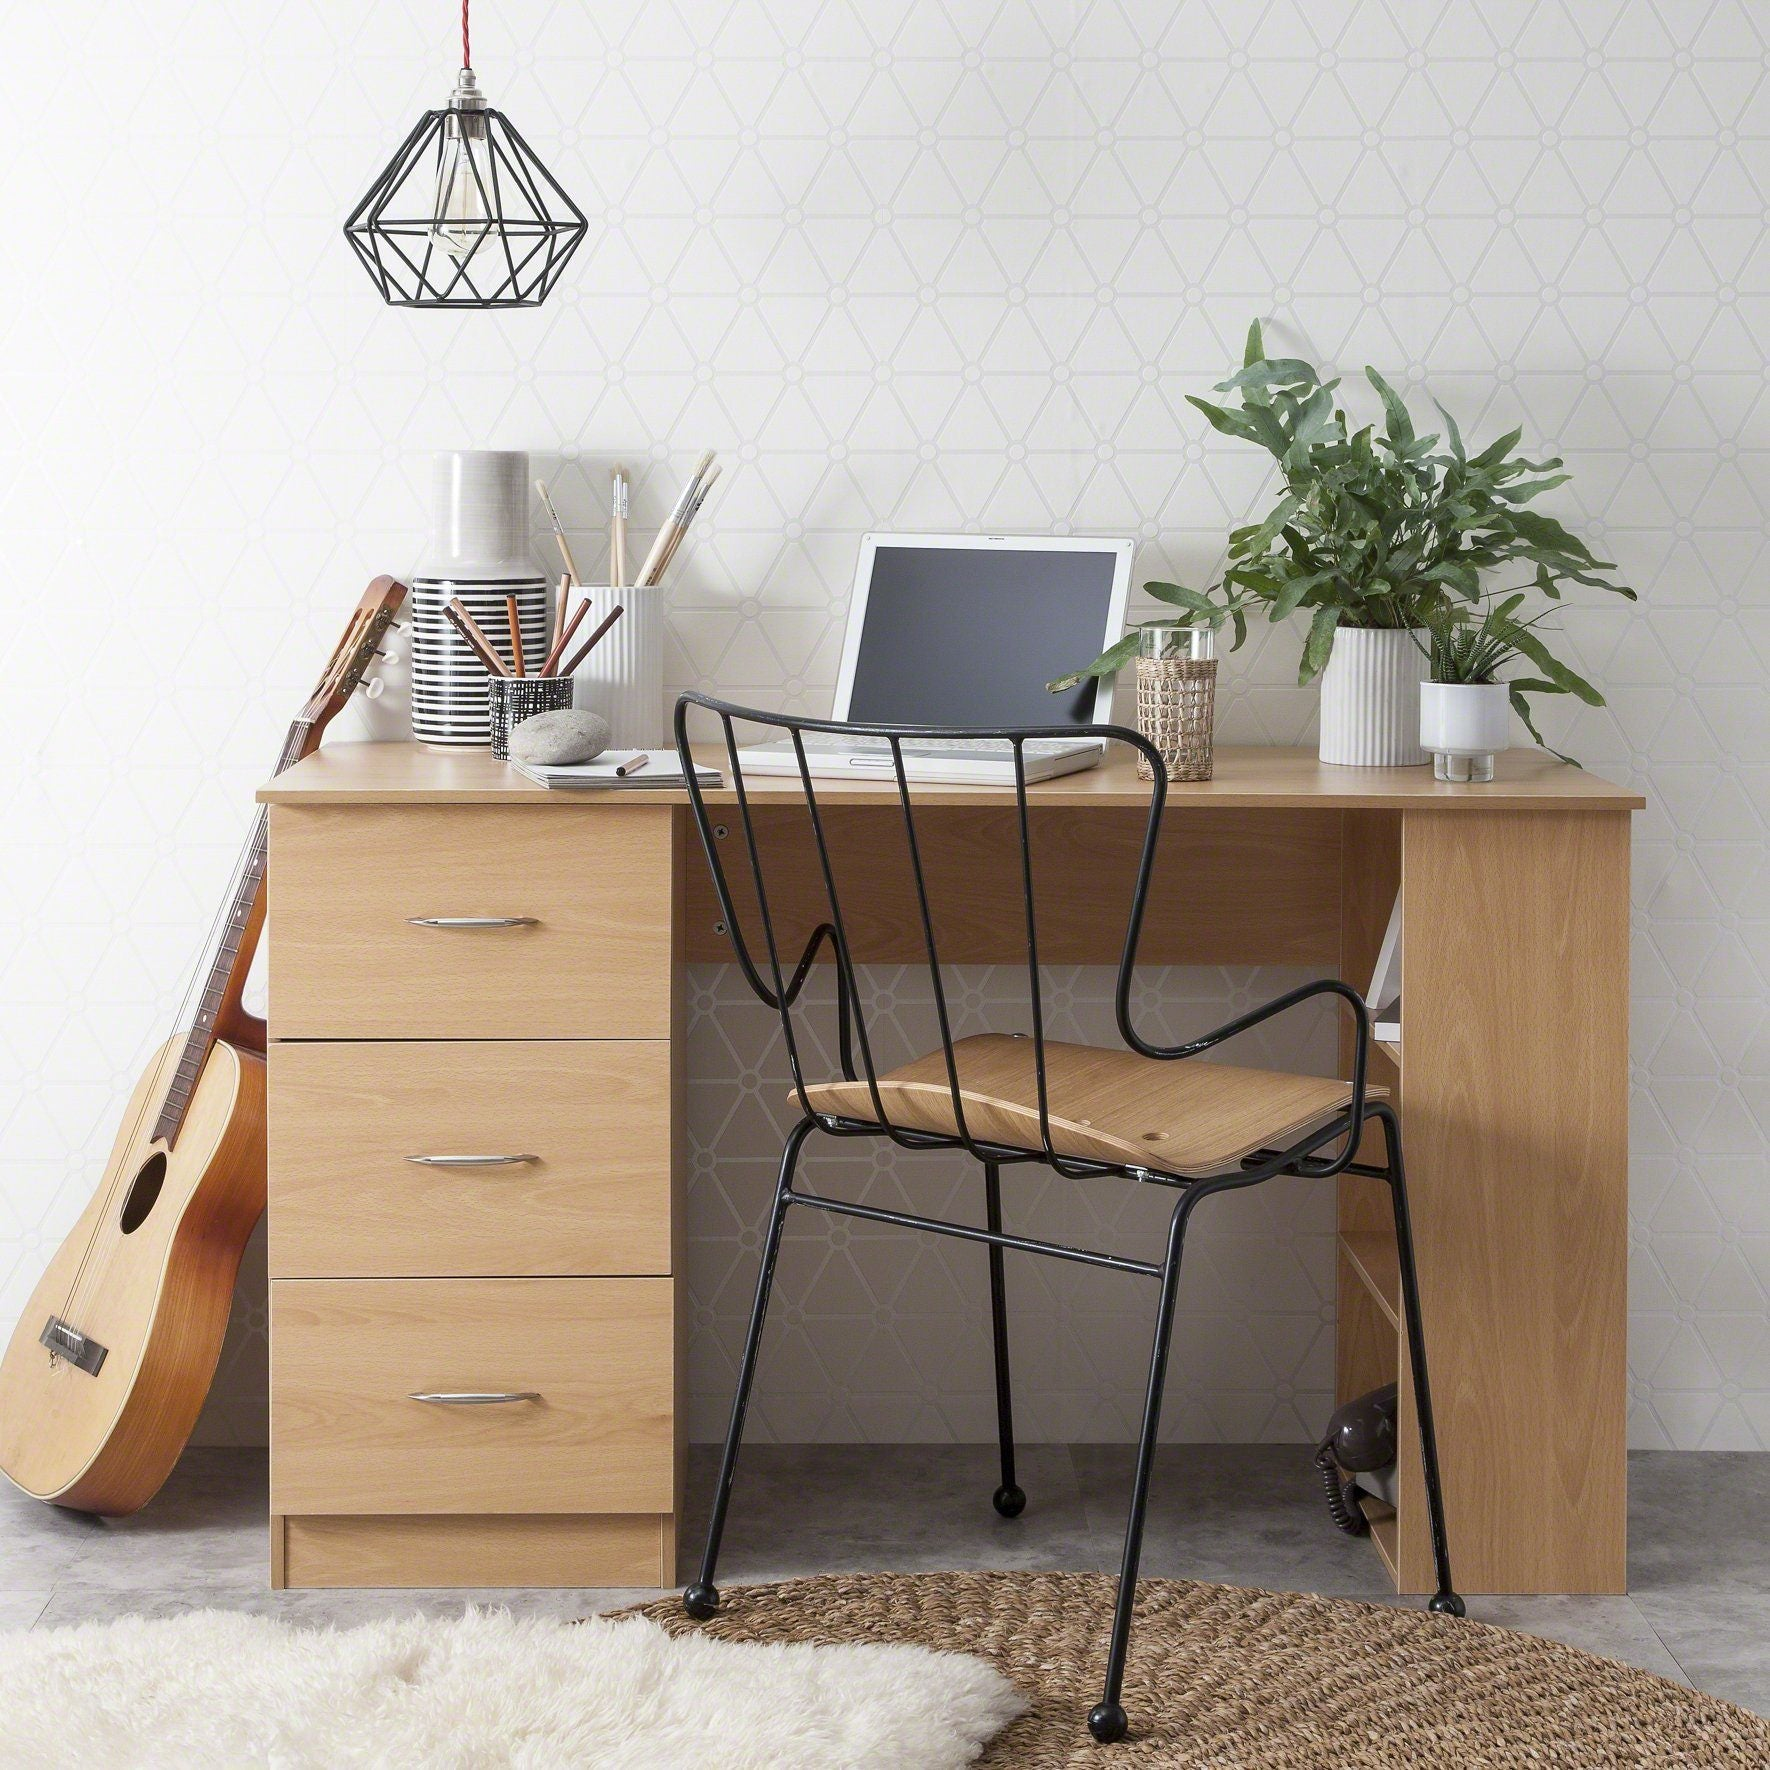 Beech Computer Desk with 3 Drawers / 3 Shelves - Laura James